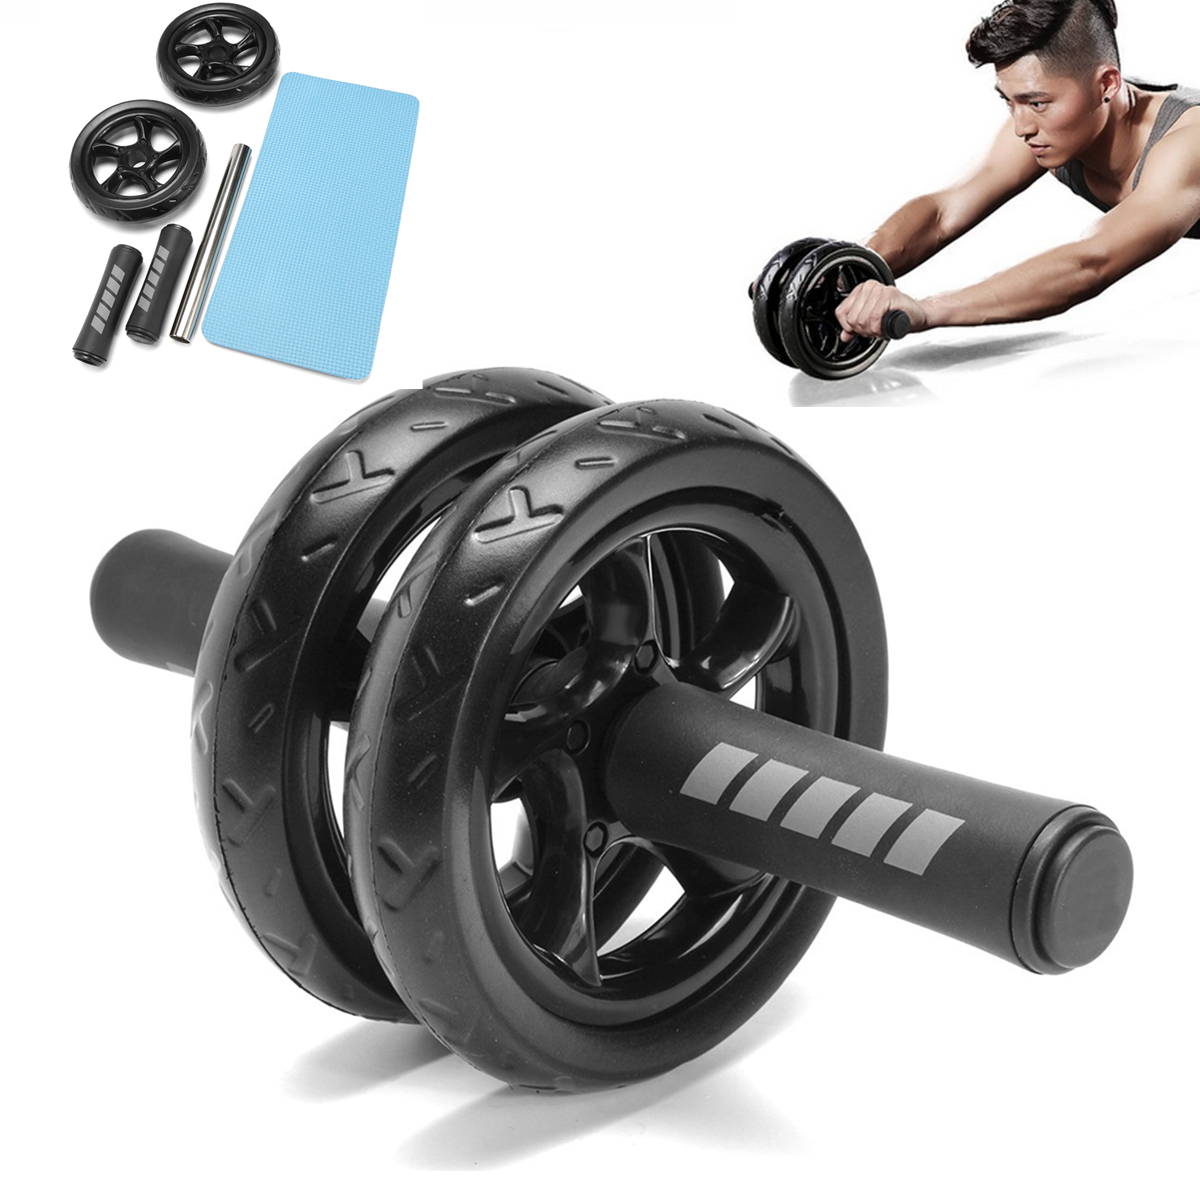 Abdominal Exercise Roller Body Fitness Strength Training ABS Wheel Gym w//Hassock